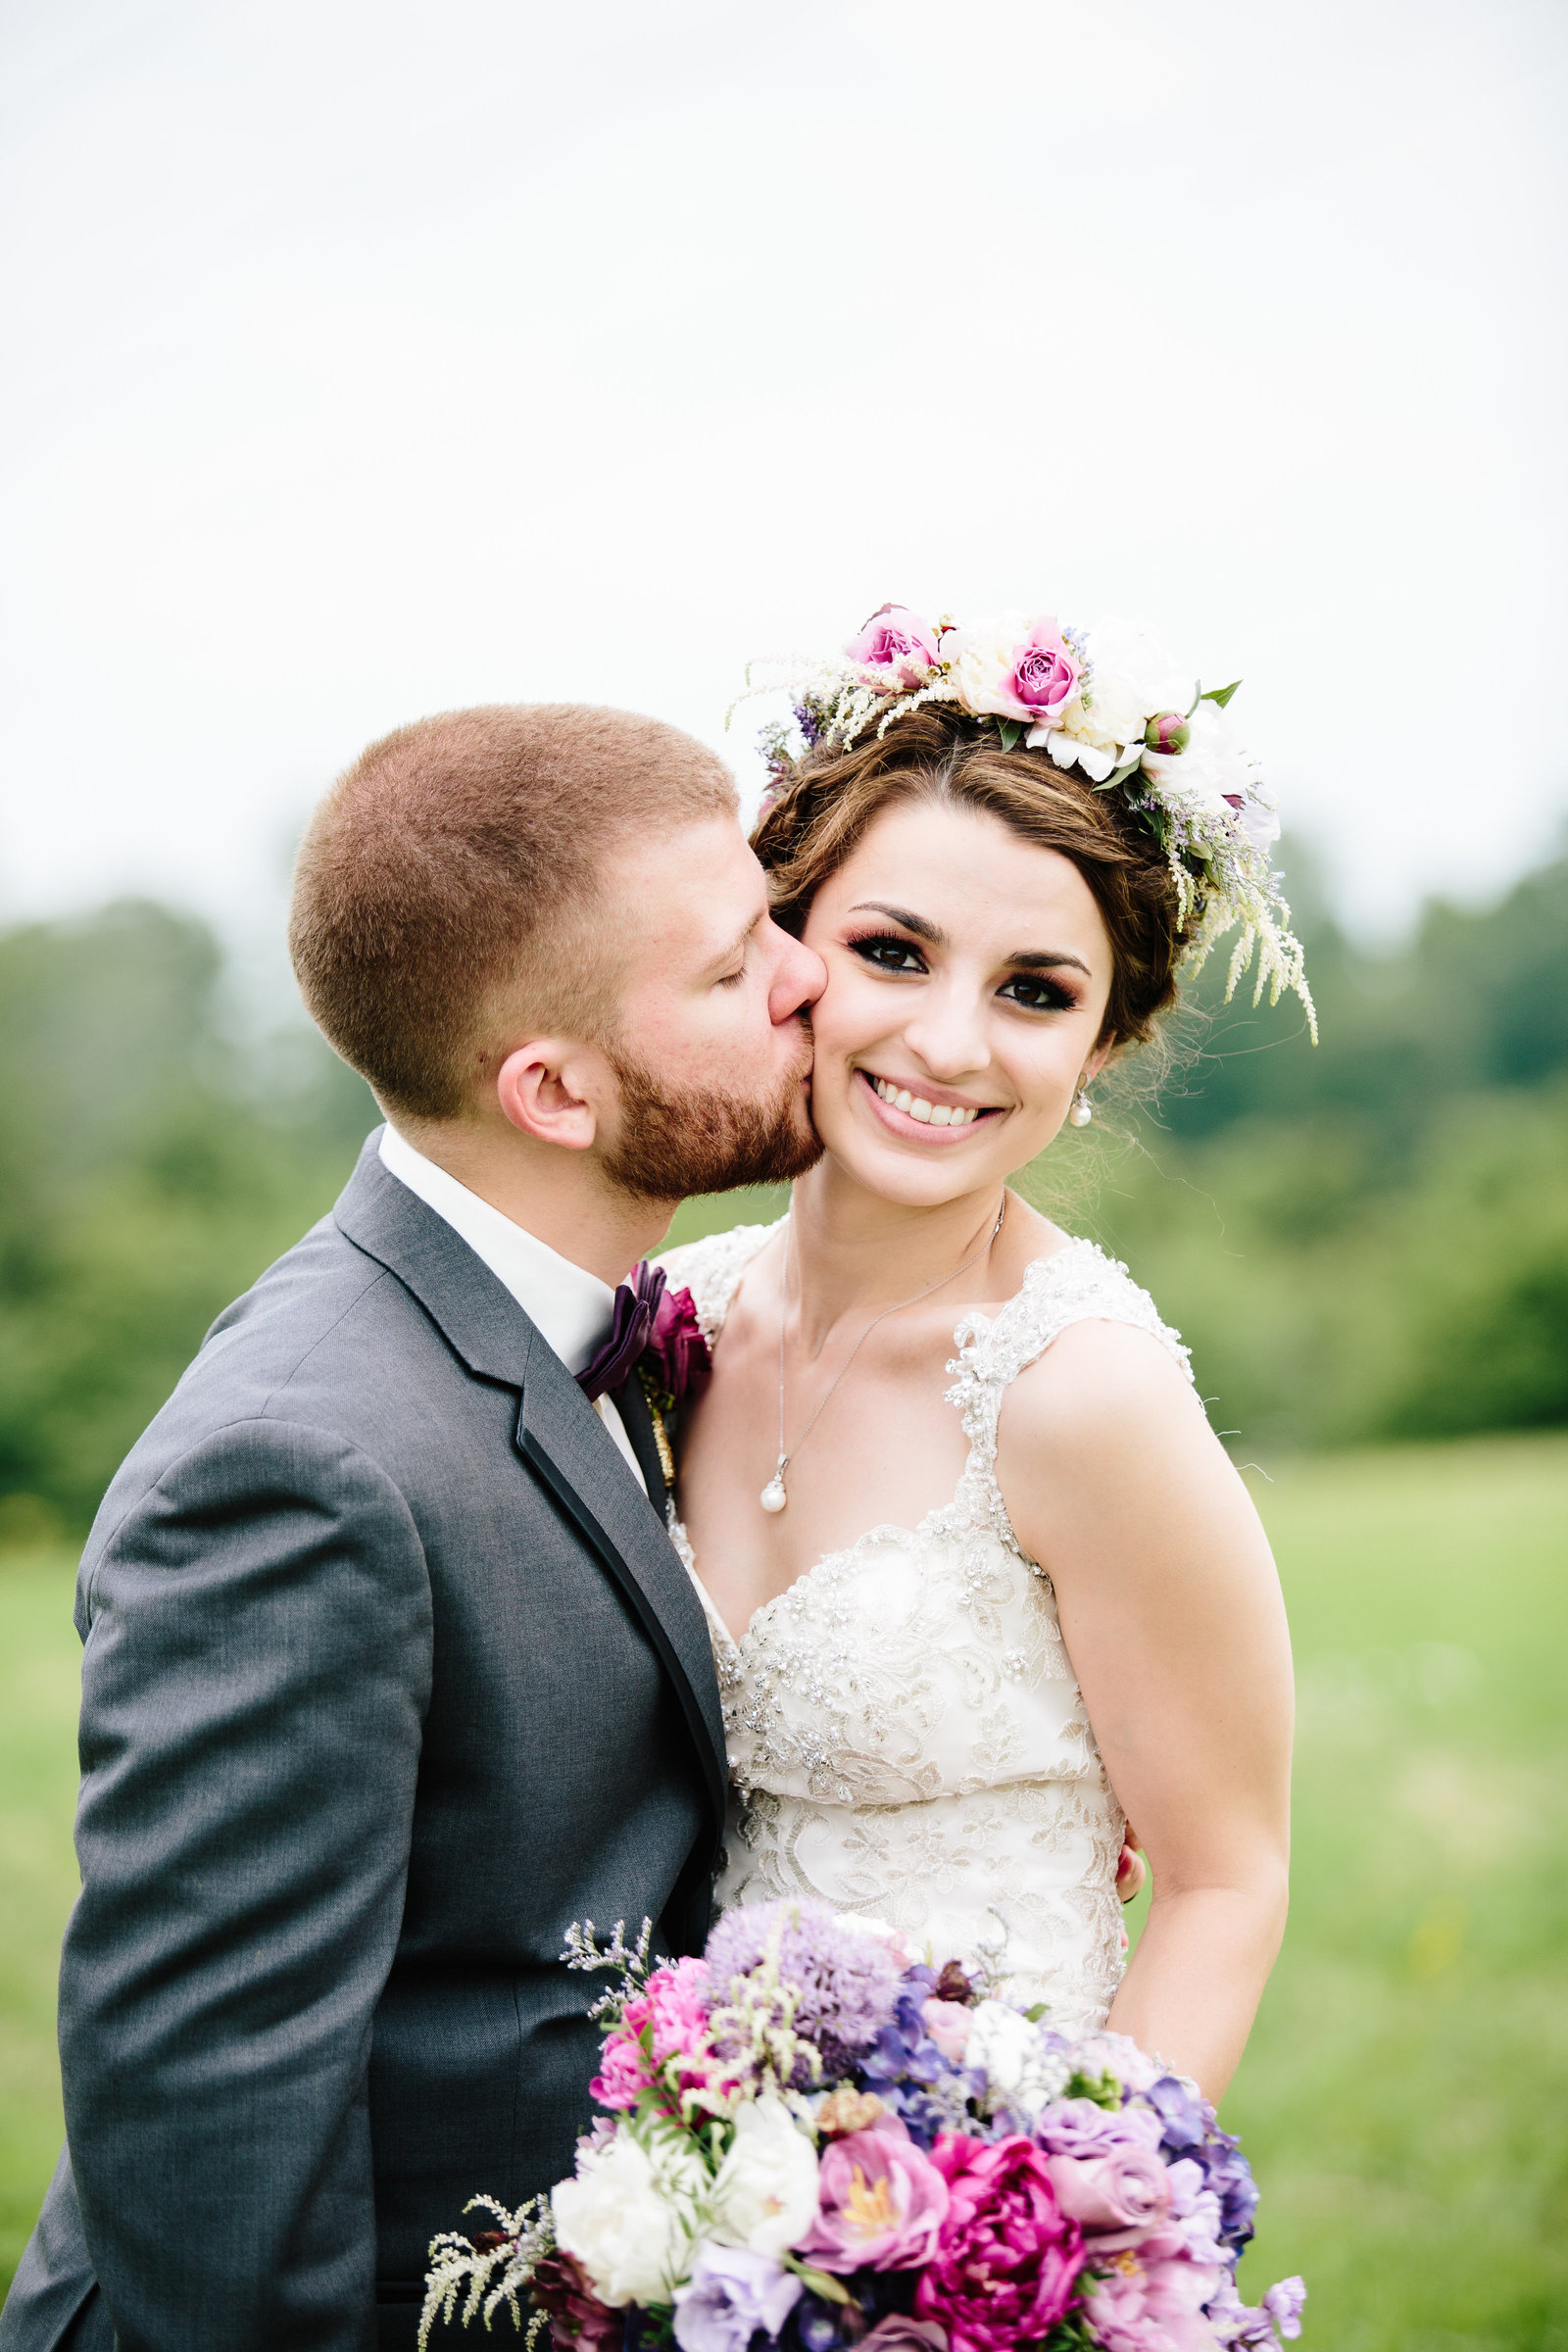 Eastern Ohio wedding at The Barn on Enchanted Acres by Austin and Rachel Photography